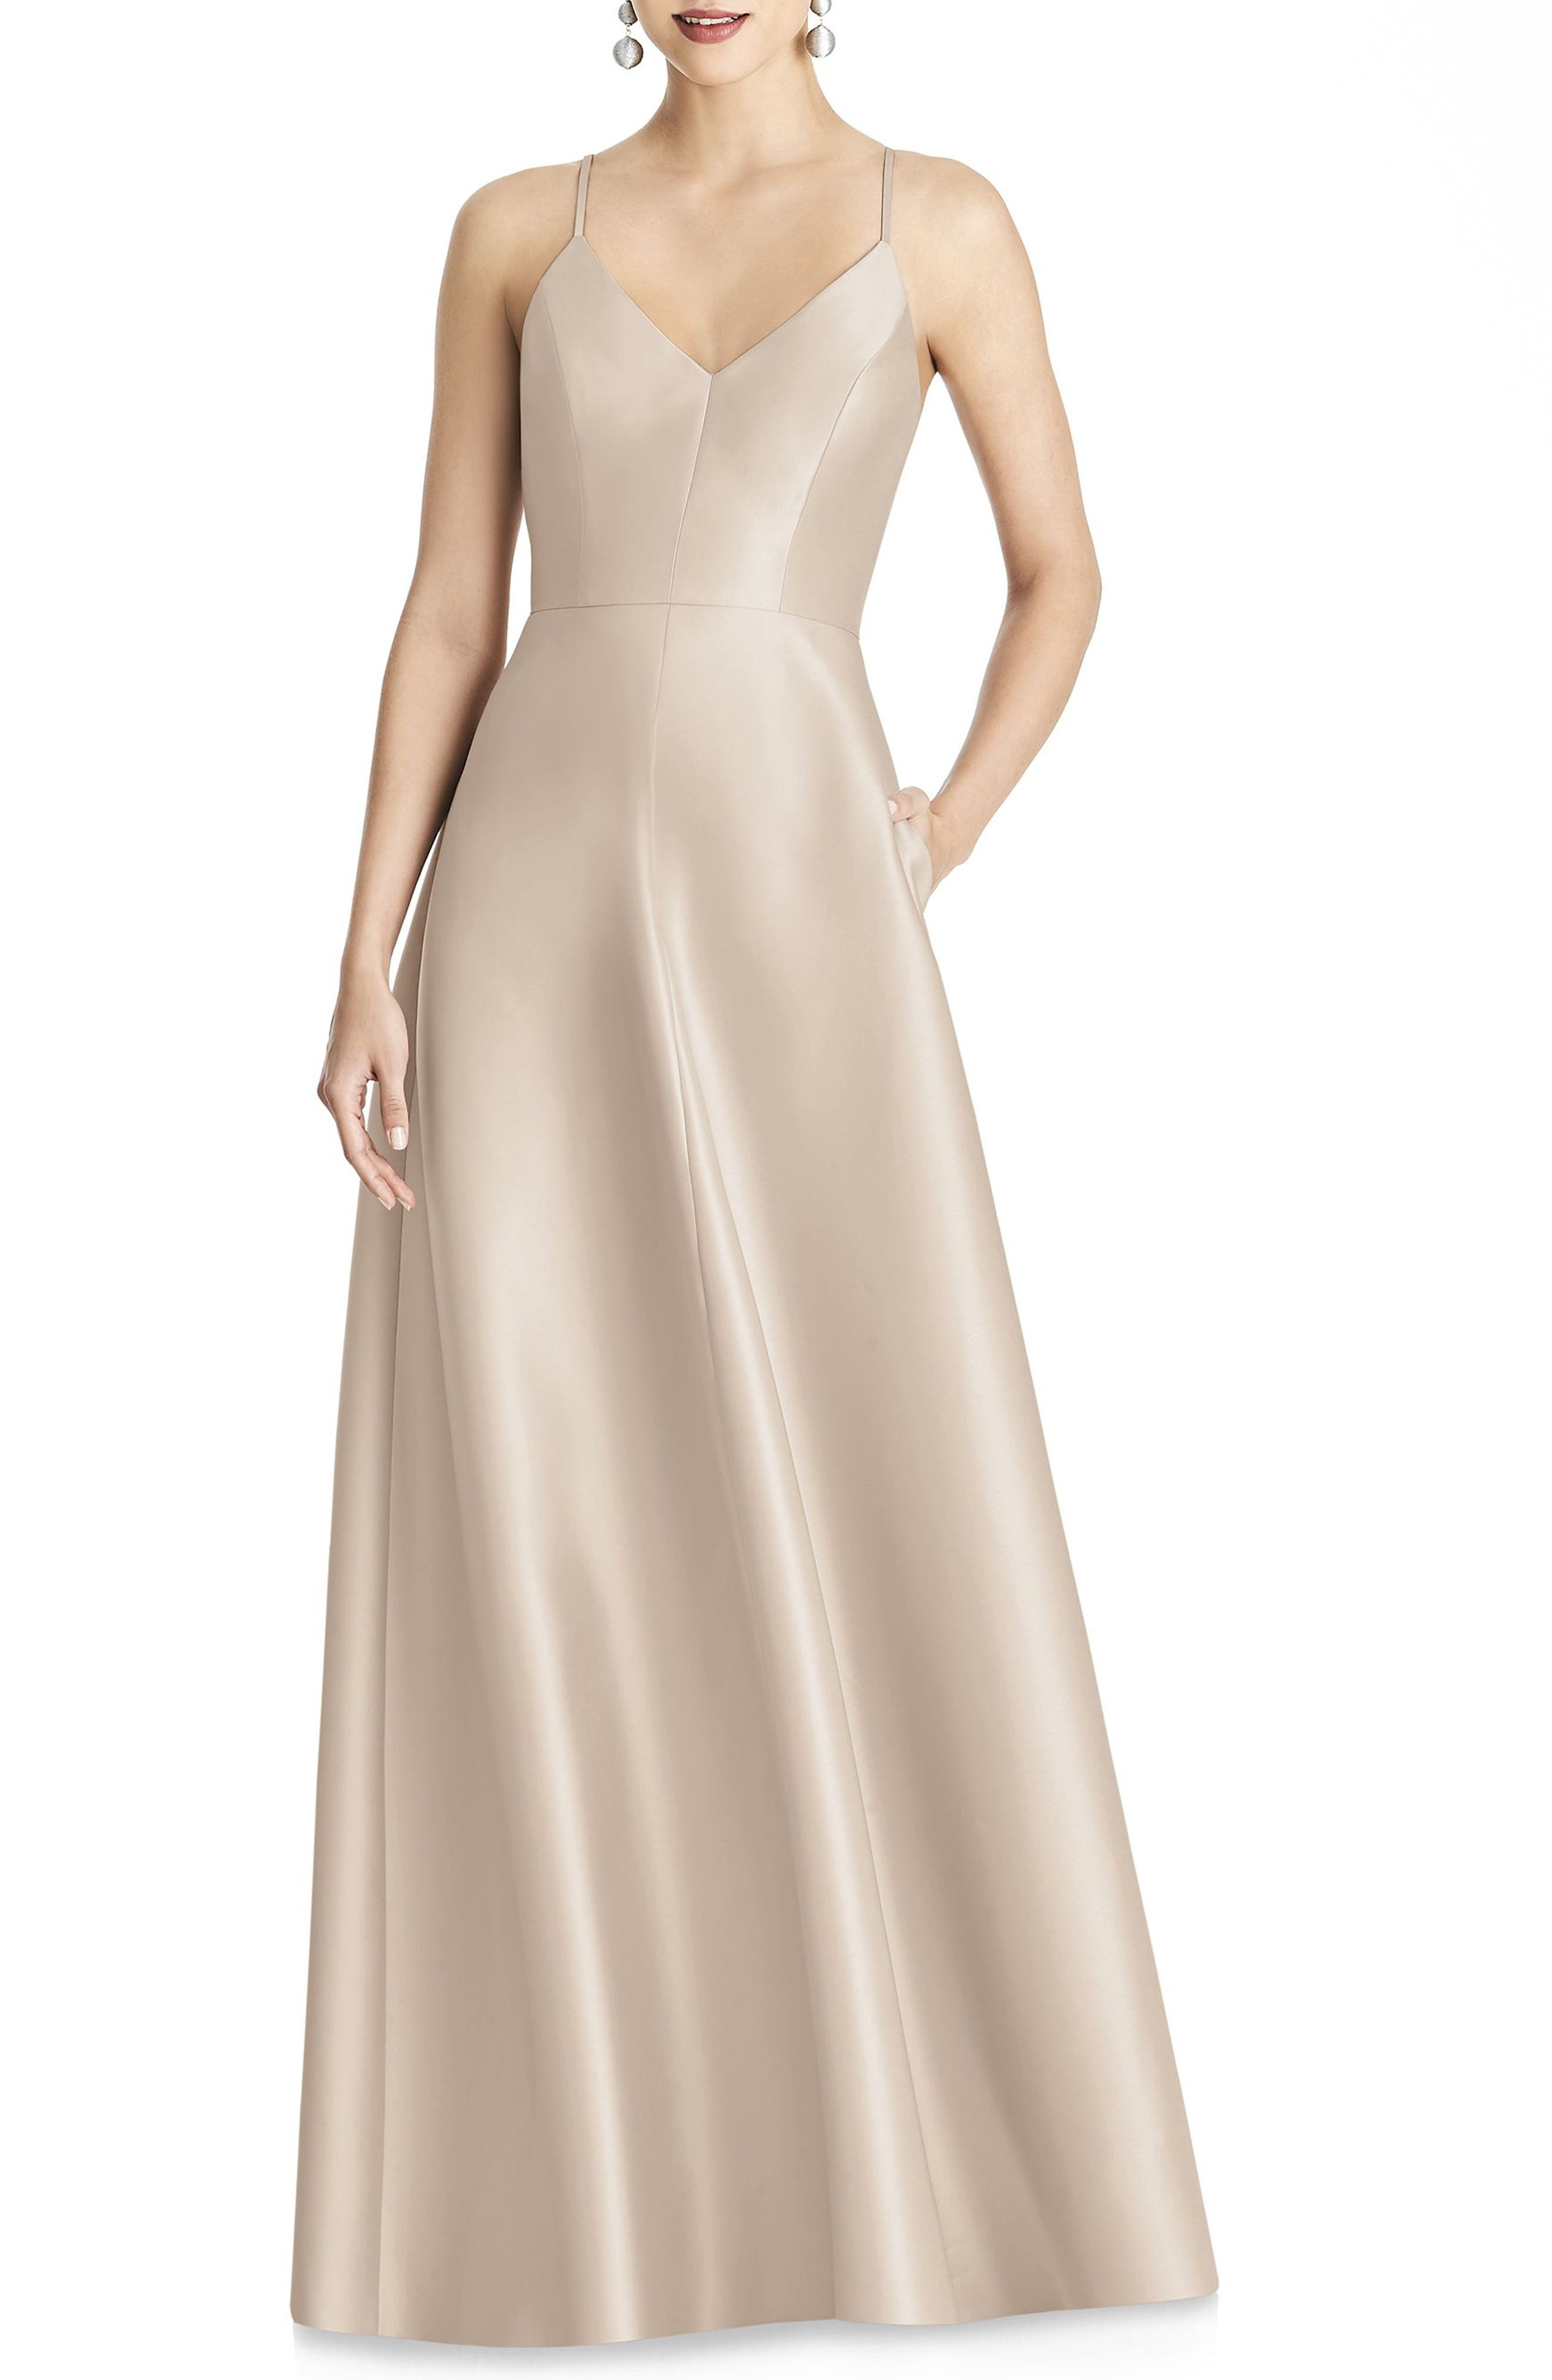 ALFRED SUNG, Strappy Sateen A-Line Gown, Main thumbnail 1, color, CAMEO